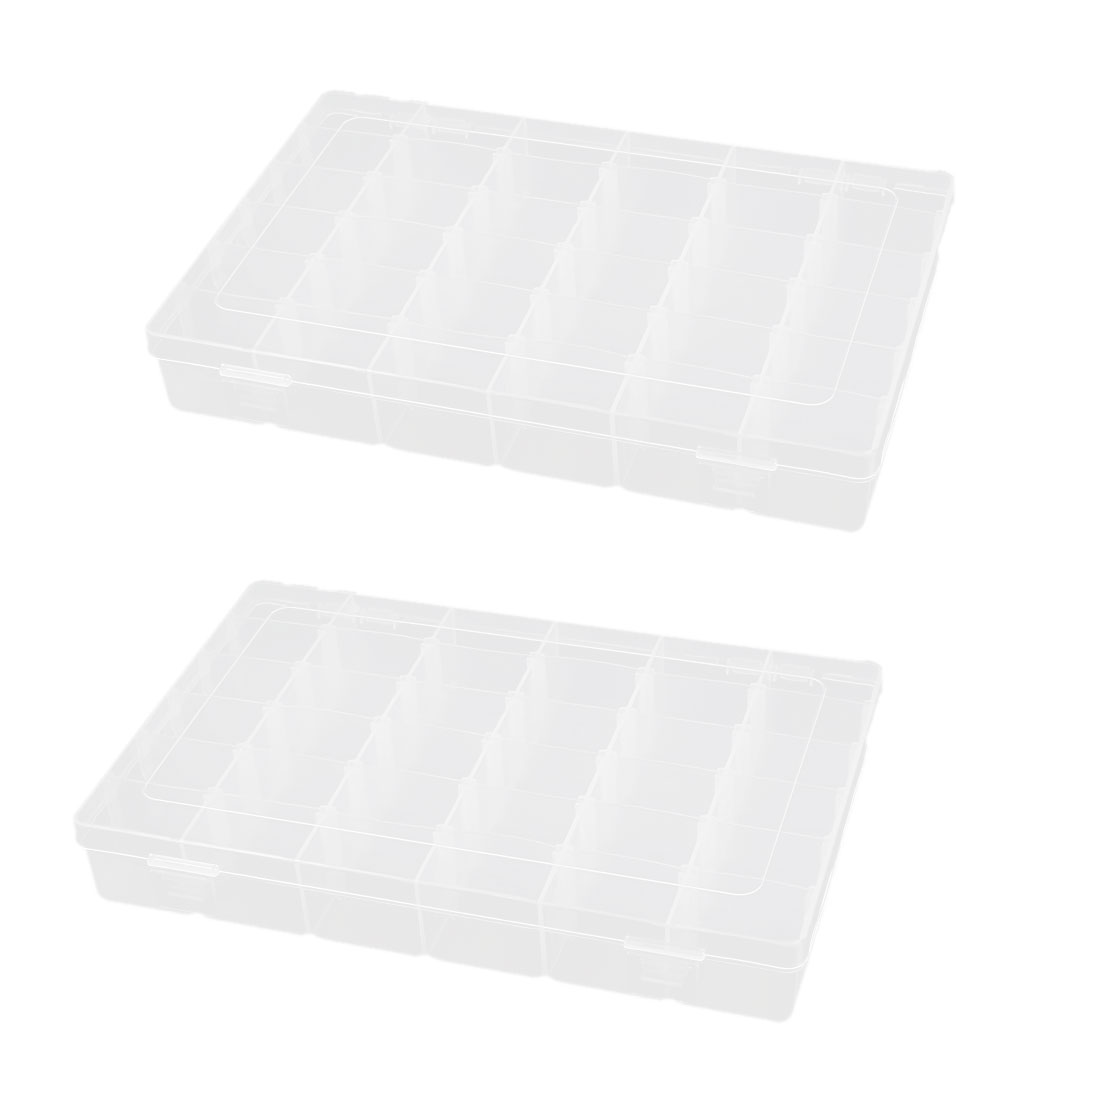 2pcs Clear White Plastic Detachable 36 Components Clip On Storage Container Holder Box Case